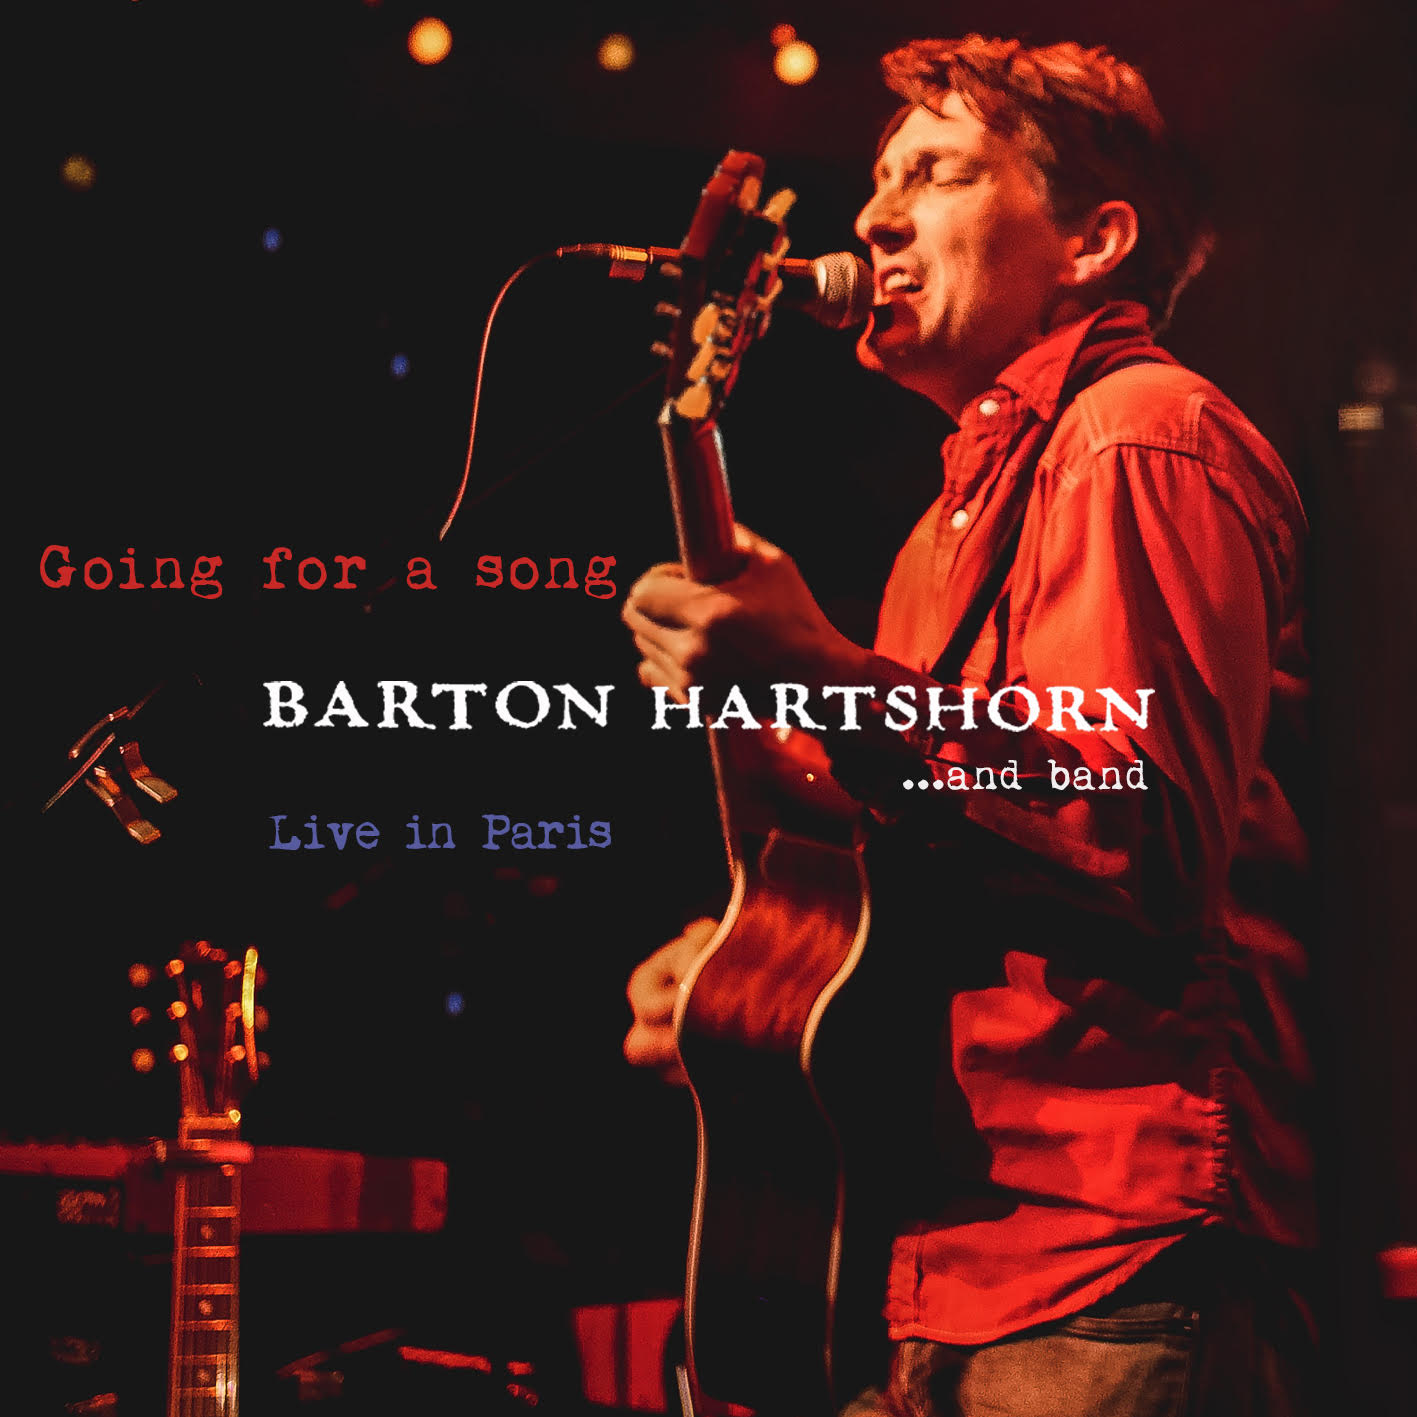 Barton Hartshorn - Going for a song